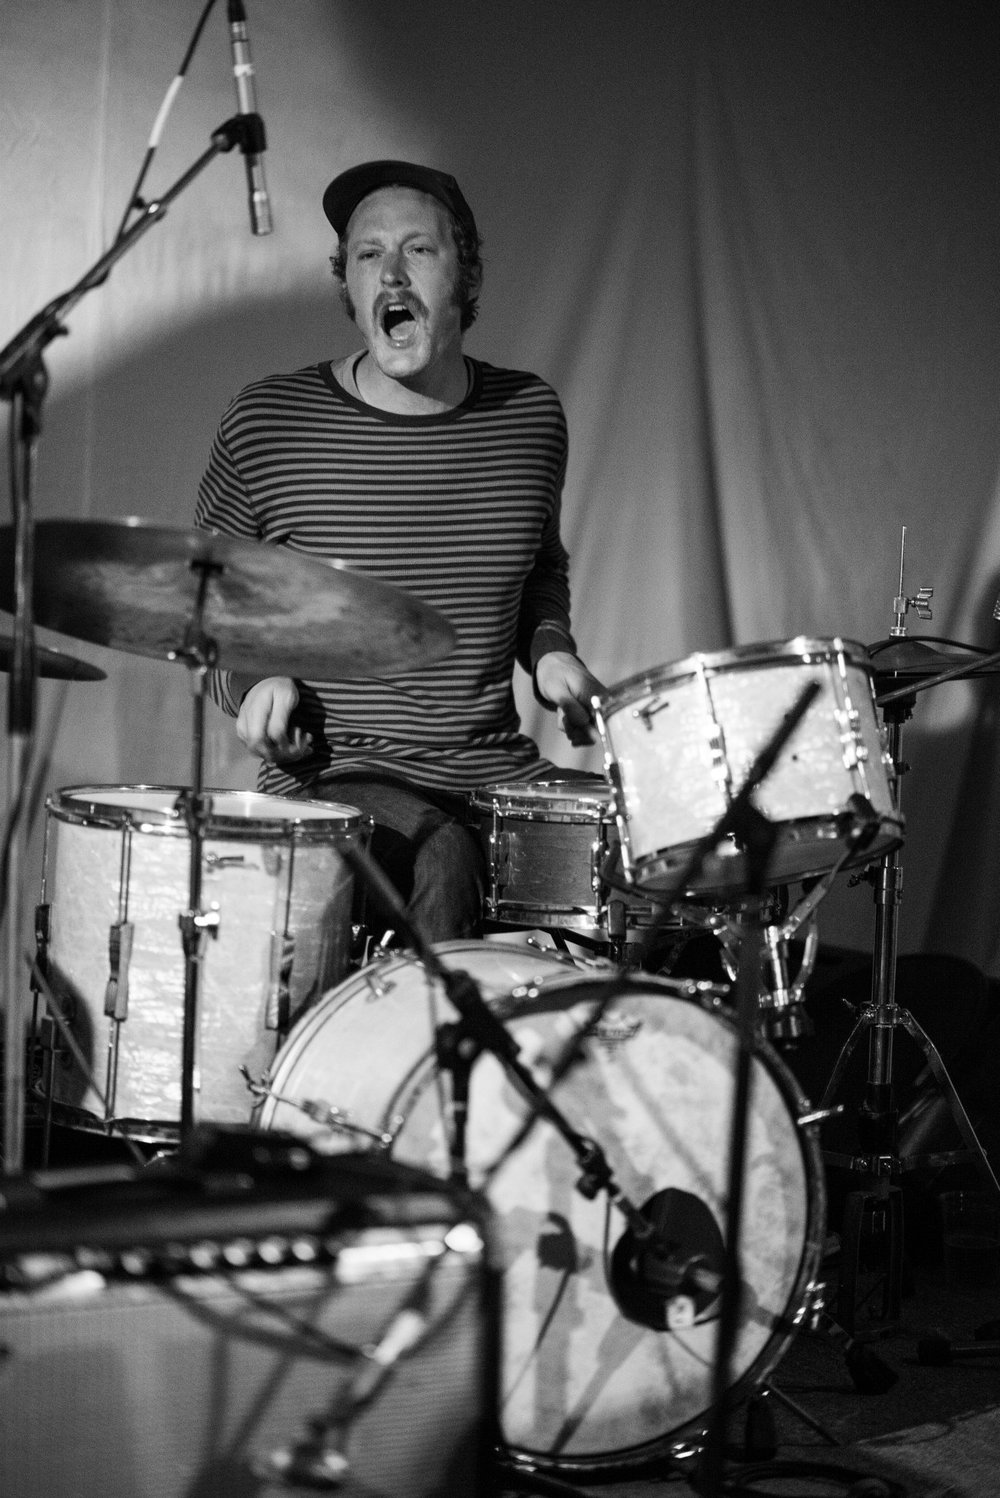 Jeff ripping on the drums and letting loose. Photo: fromthefringesphotography.com